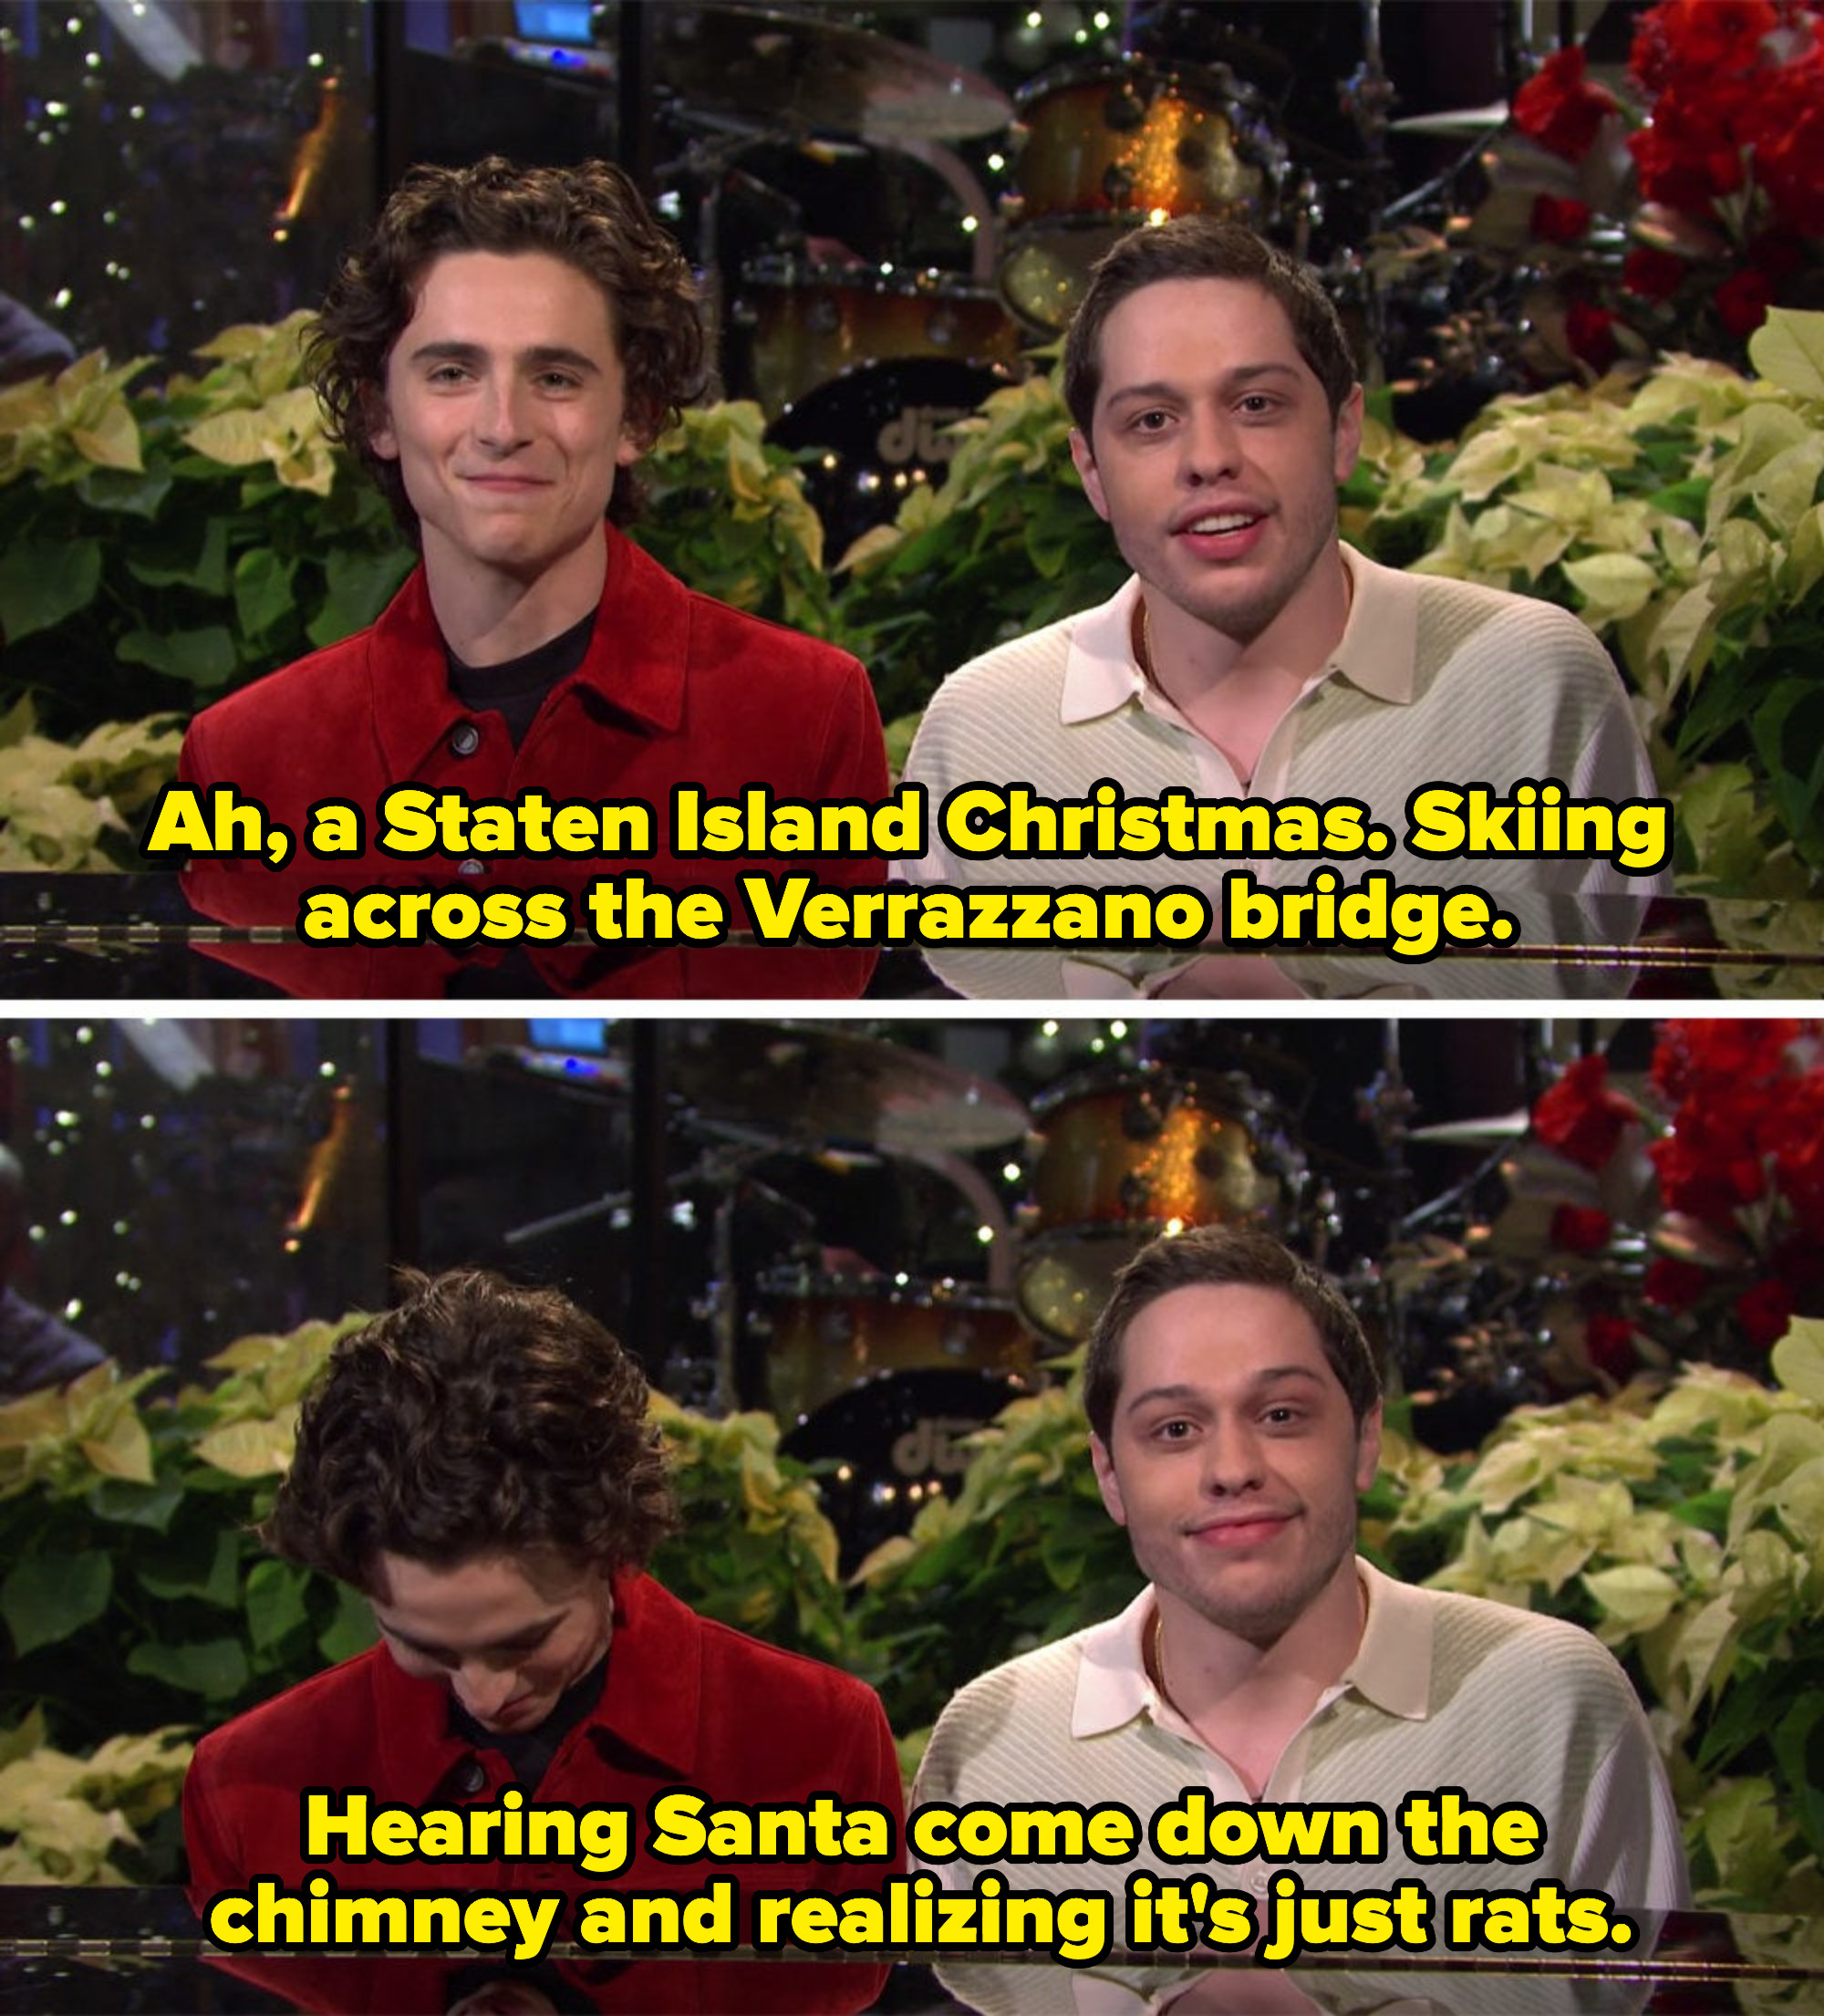 Pete talking about skiing on the bridge and rats coming down the chimney instead of Santa